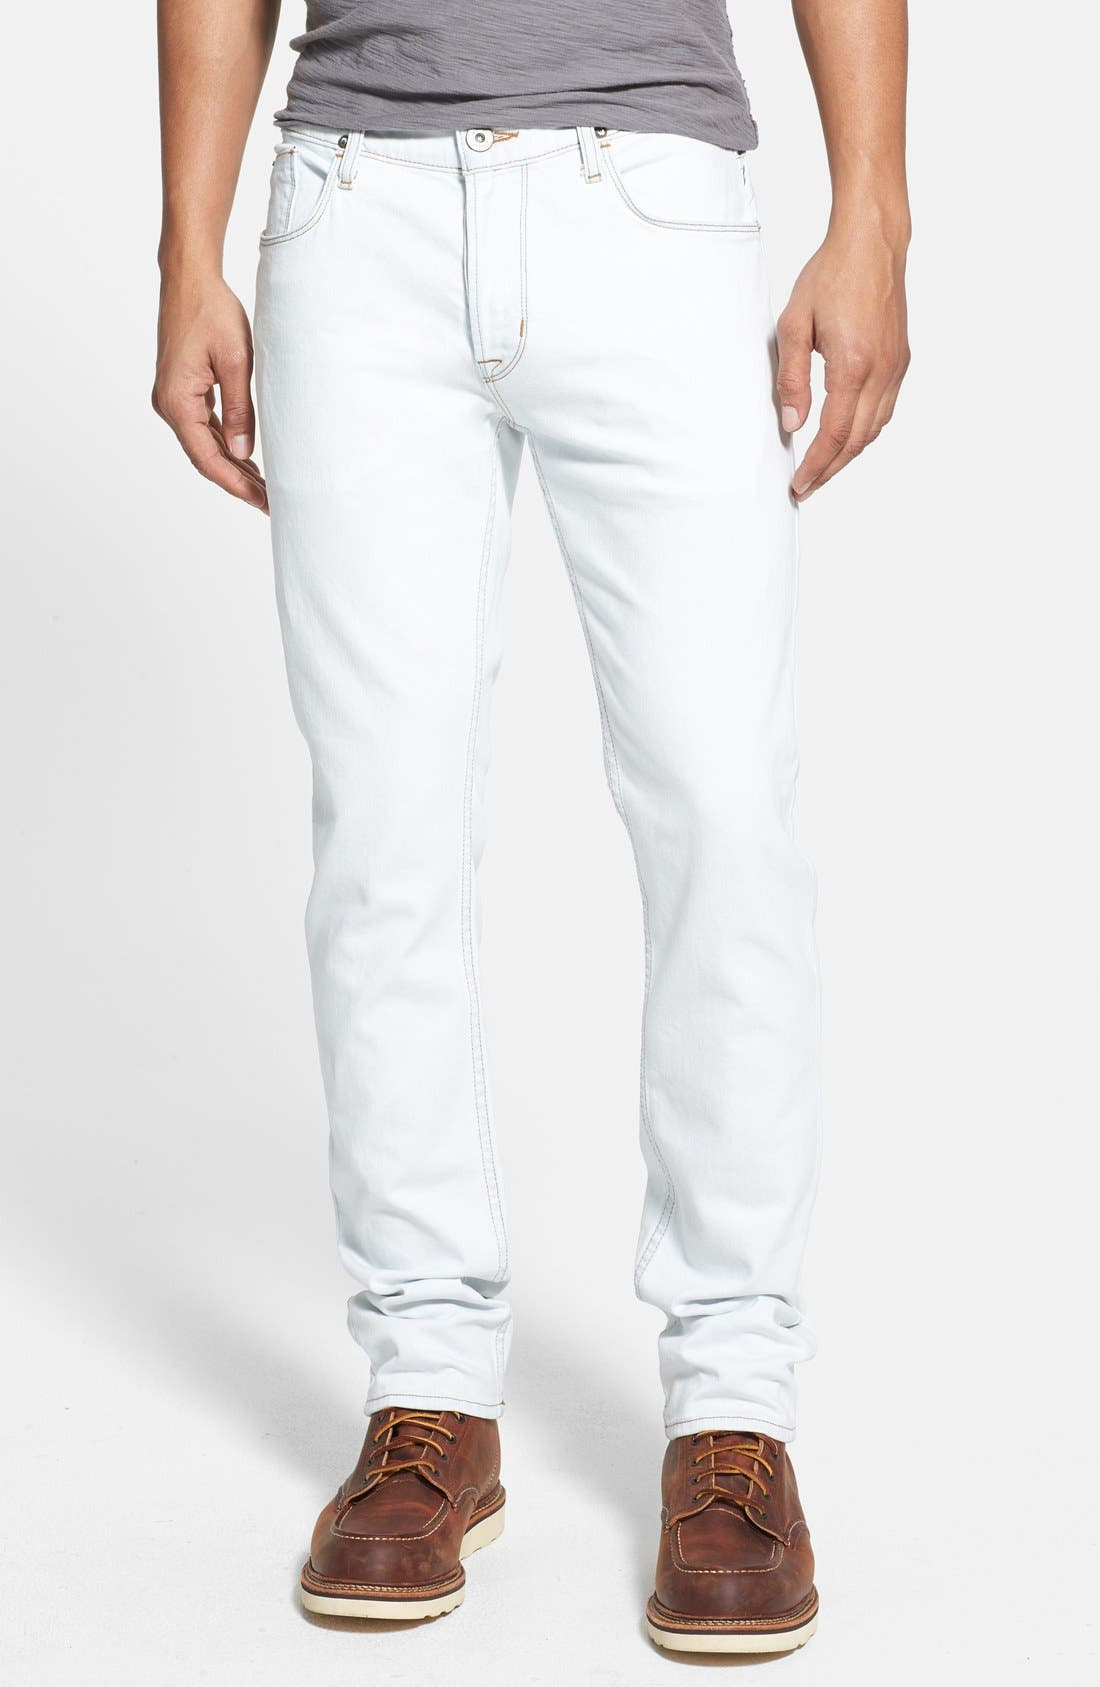 Alternate Image 1 Selected - Hudson Jeans 'Sartor' Slouchy Skinny Fit Jeans (Flashback)